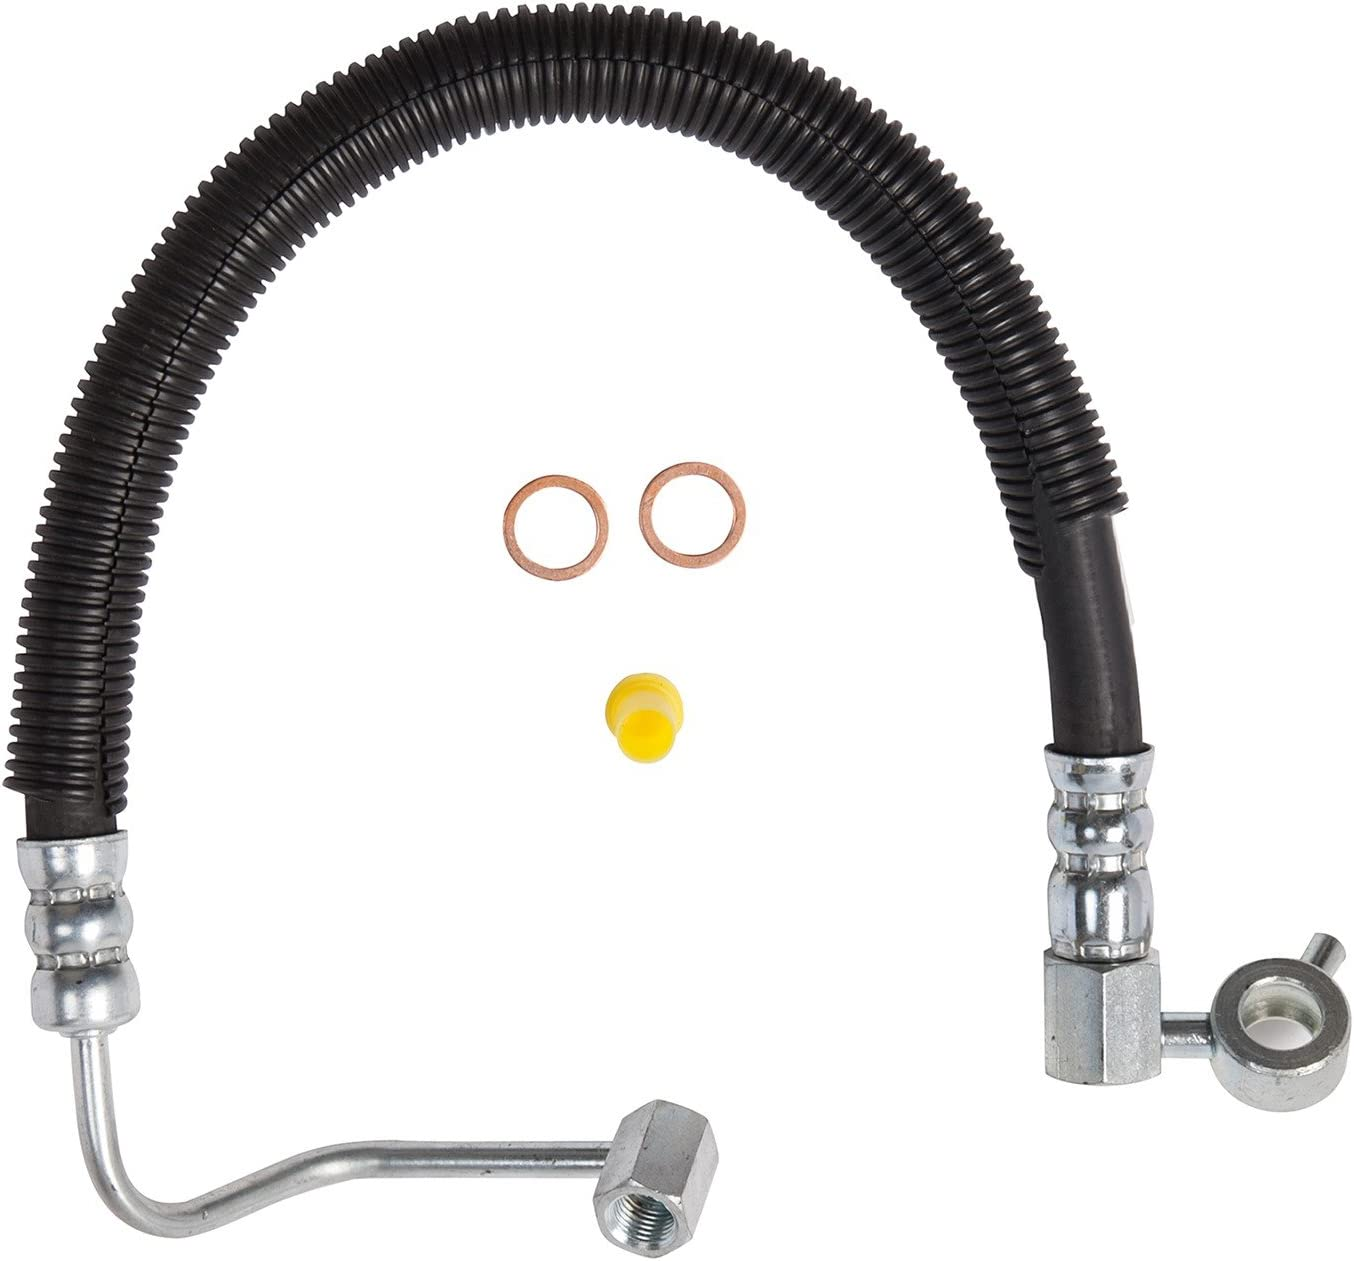 Edelmann 71871 Power Steering Pressure Hose All items free shipping Miami Mall